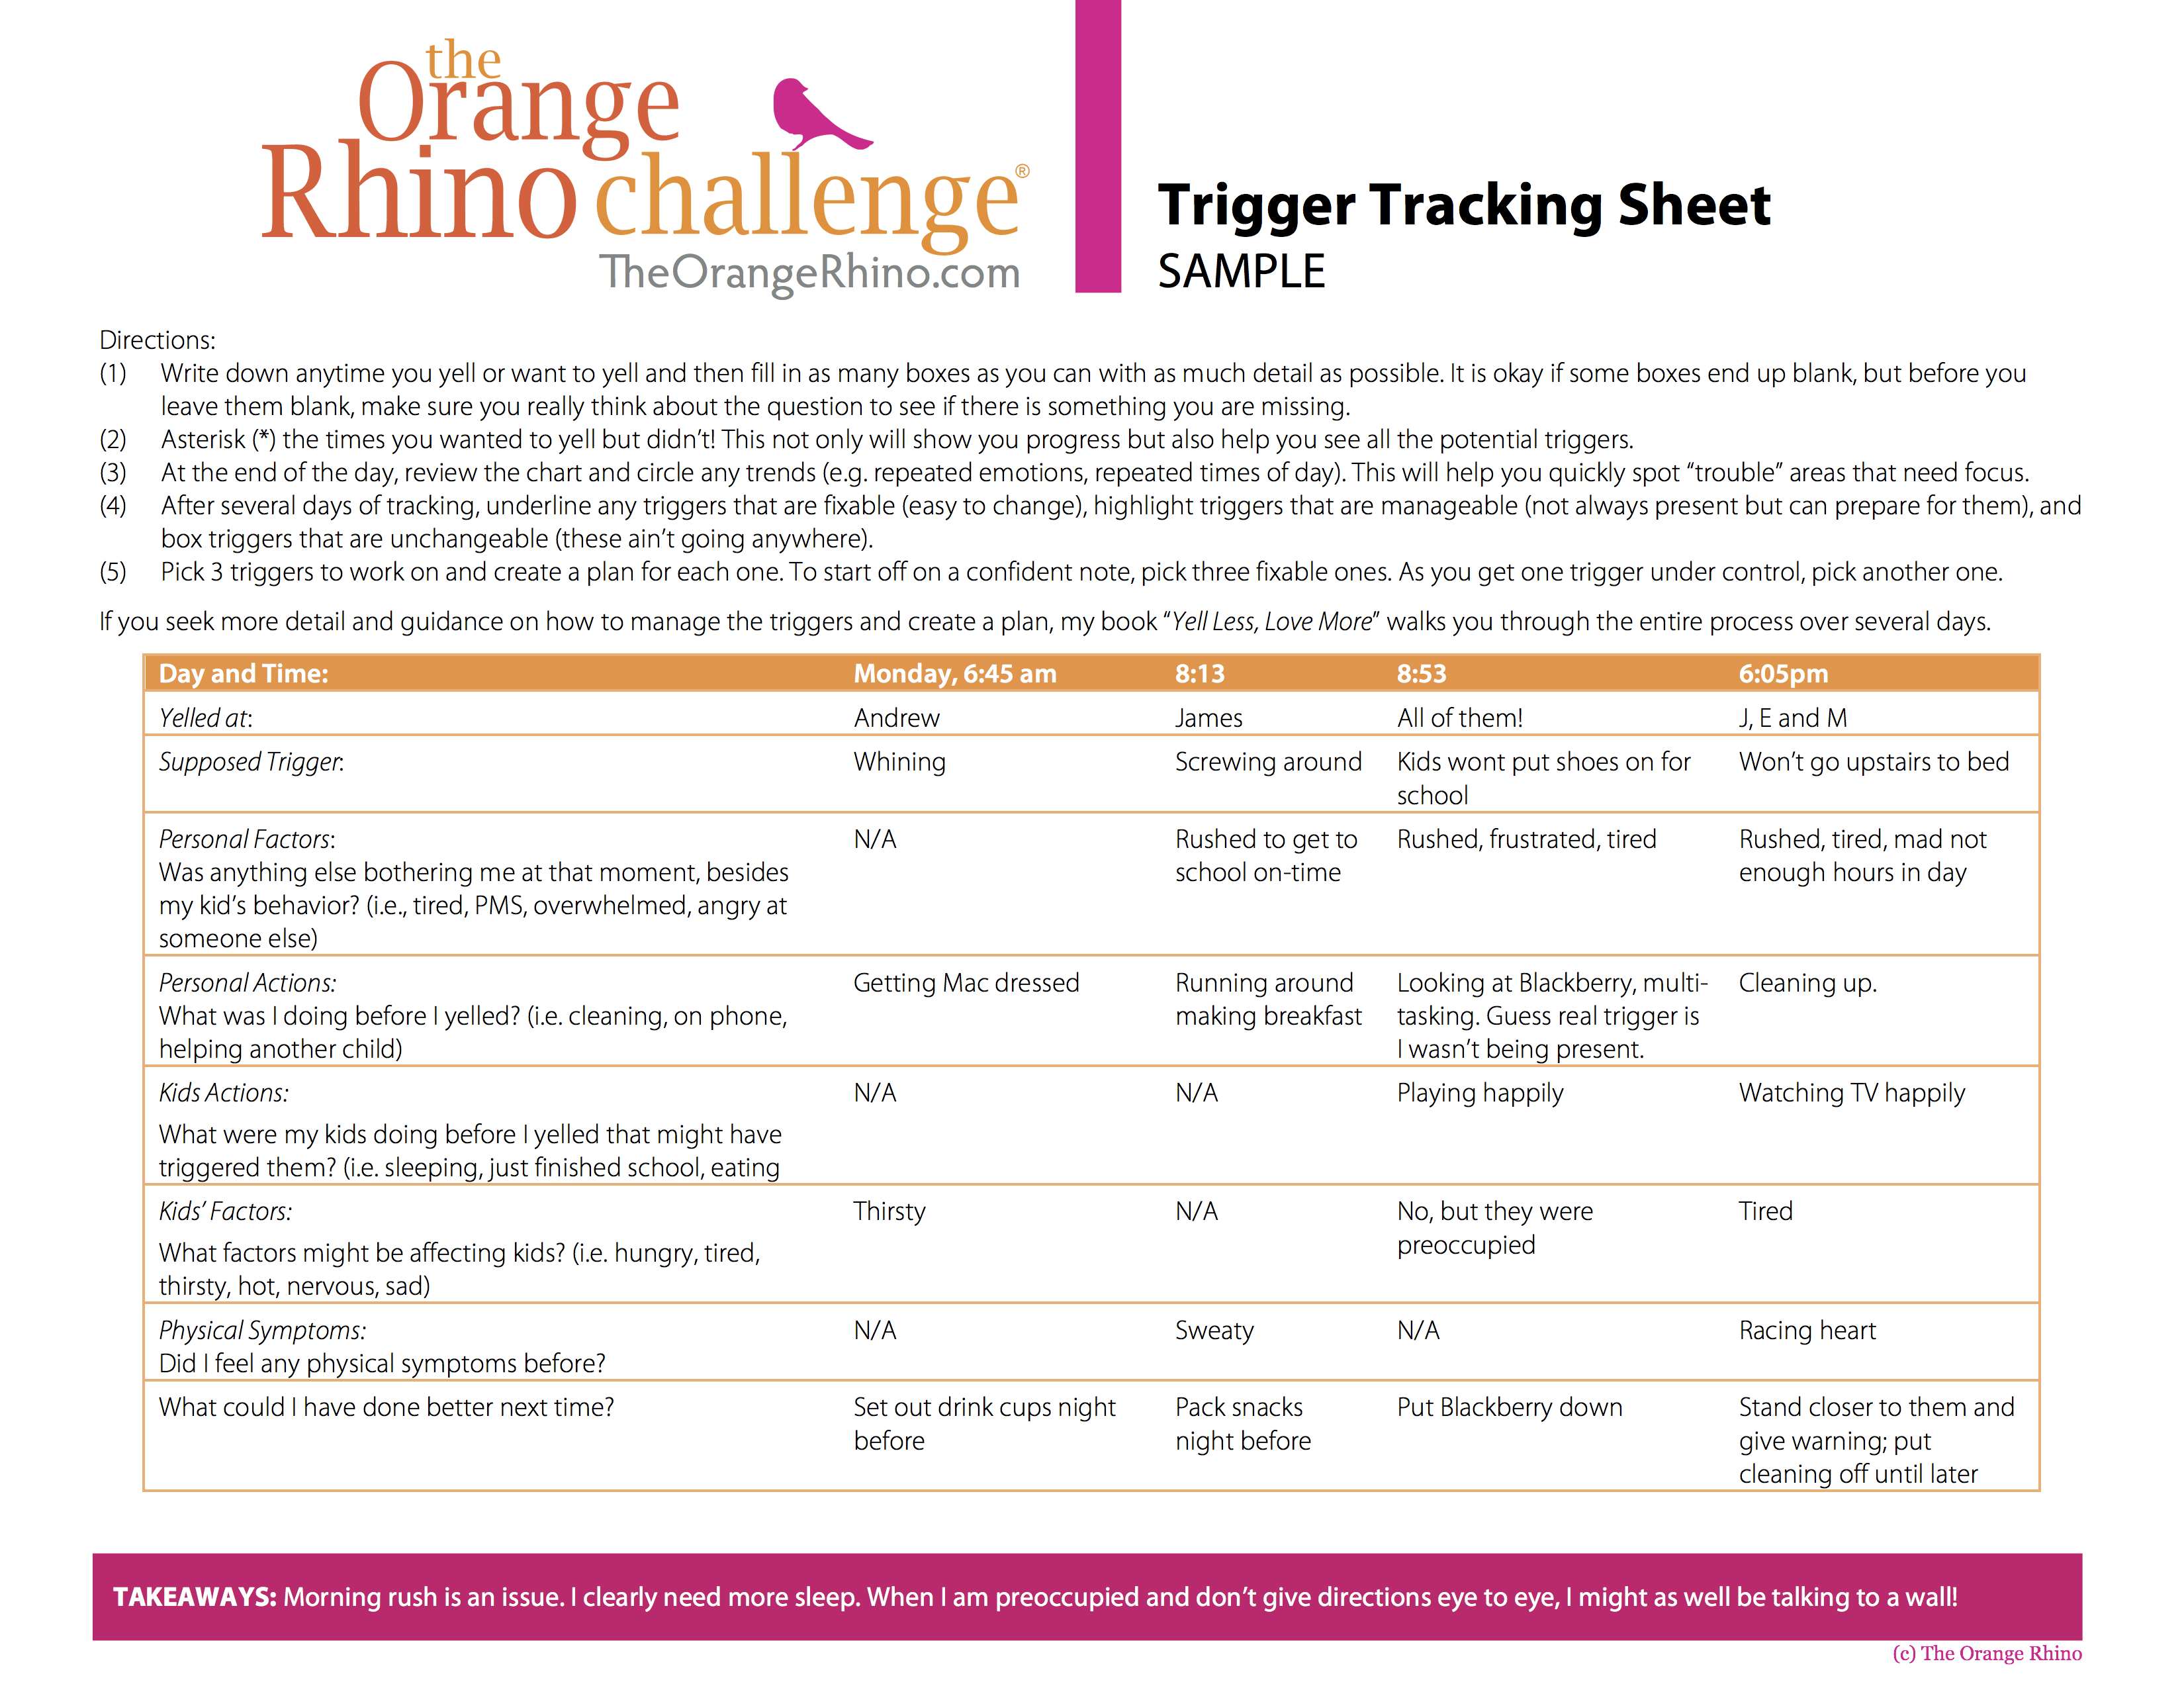 Orange Rhino Trigger Tracking Sheet Sample jpg